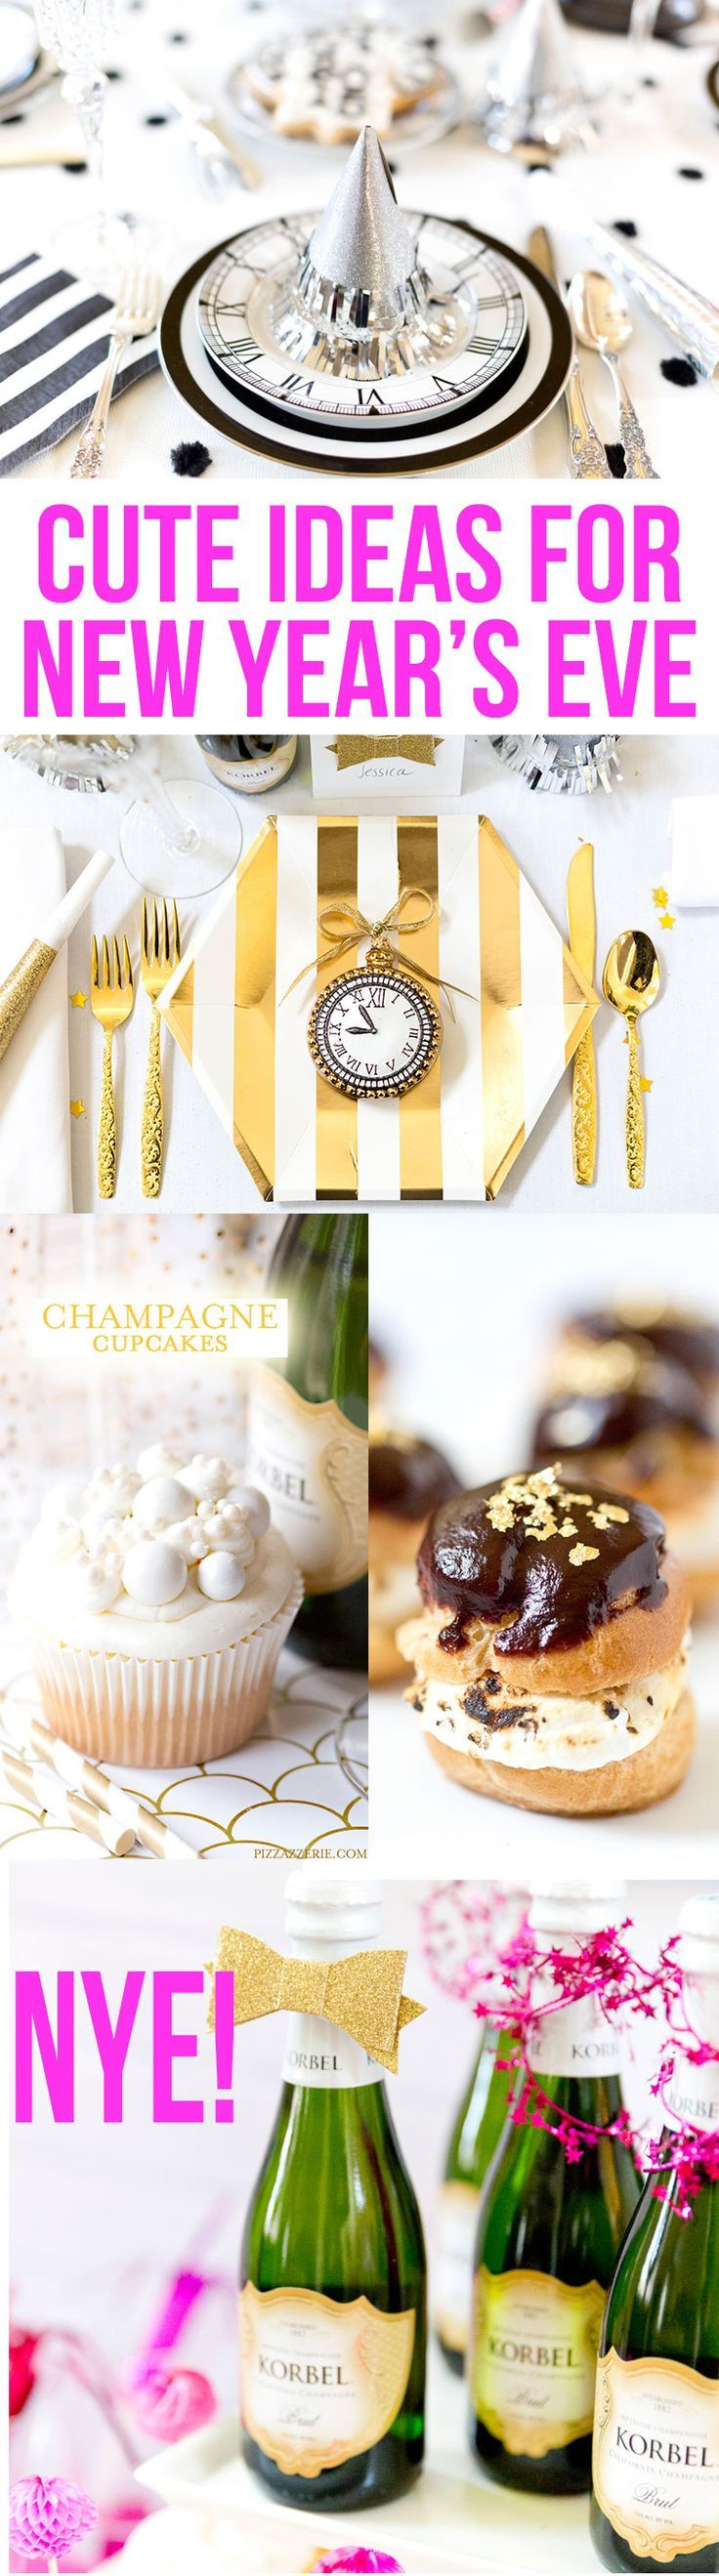 258 best Christmas & Holiday Party Ideas images on Pinterest ...